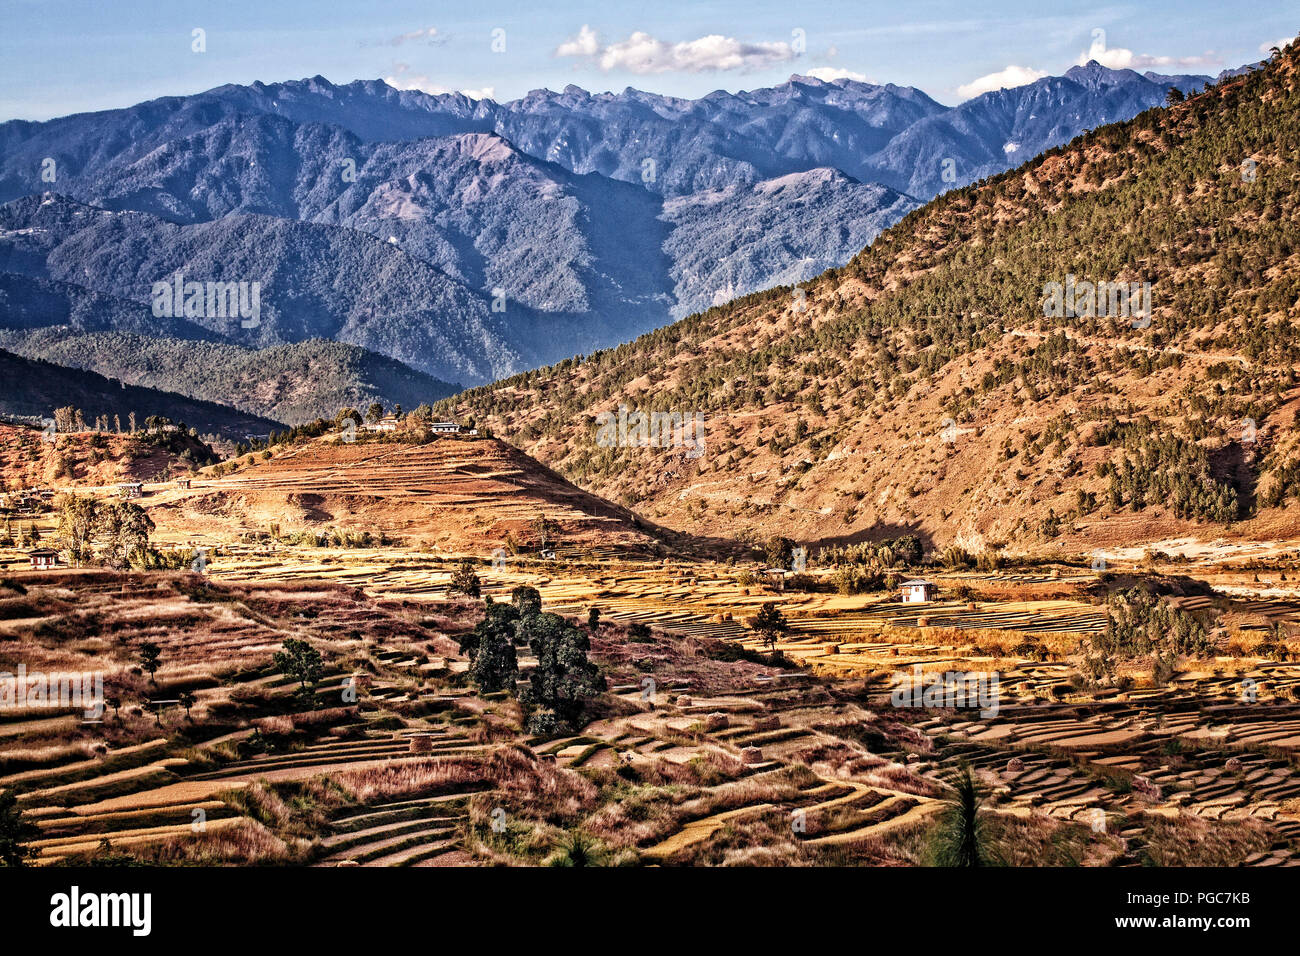 The Chime Lhakhang is located 10 kilometres from Punakha near a village called Sopsokha. - Stock Image